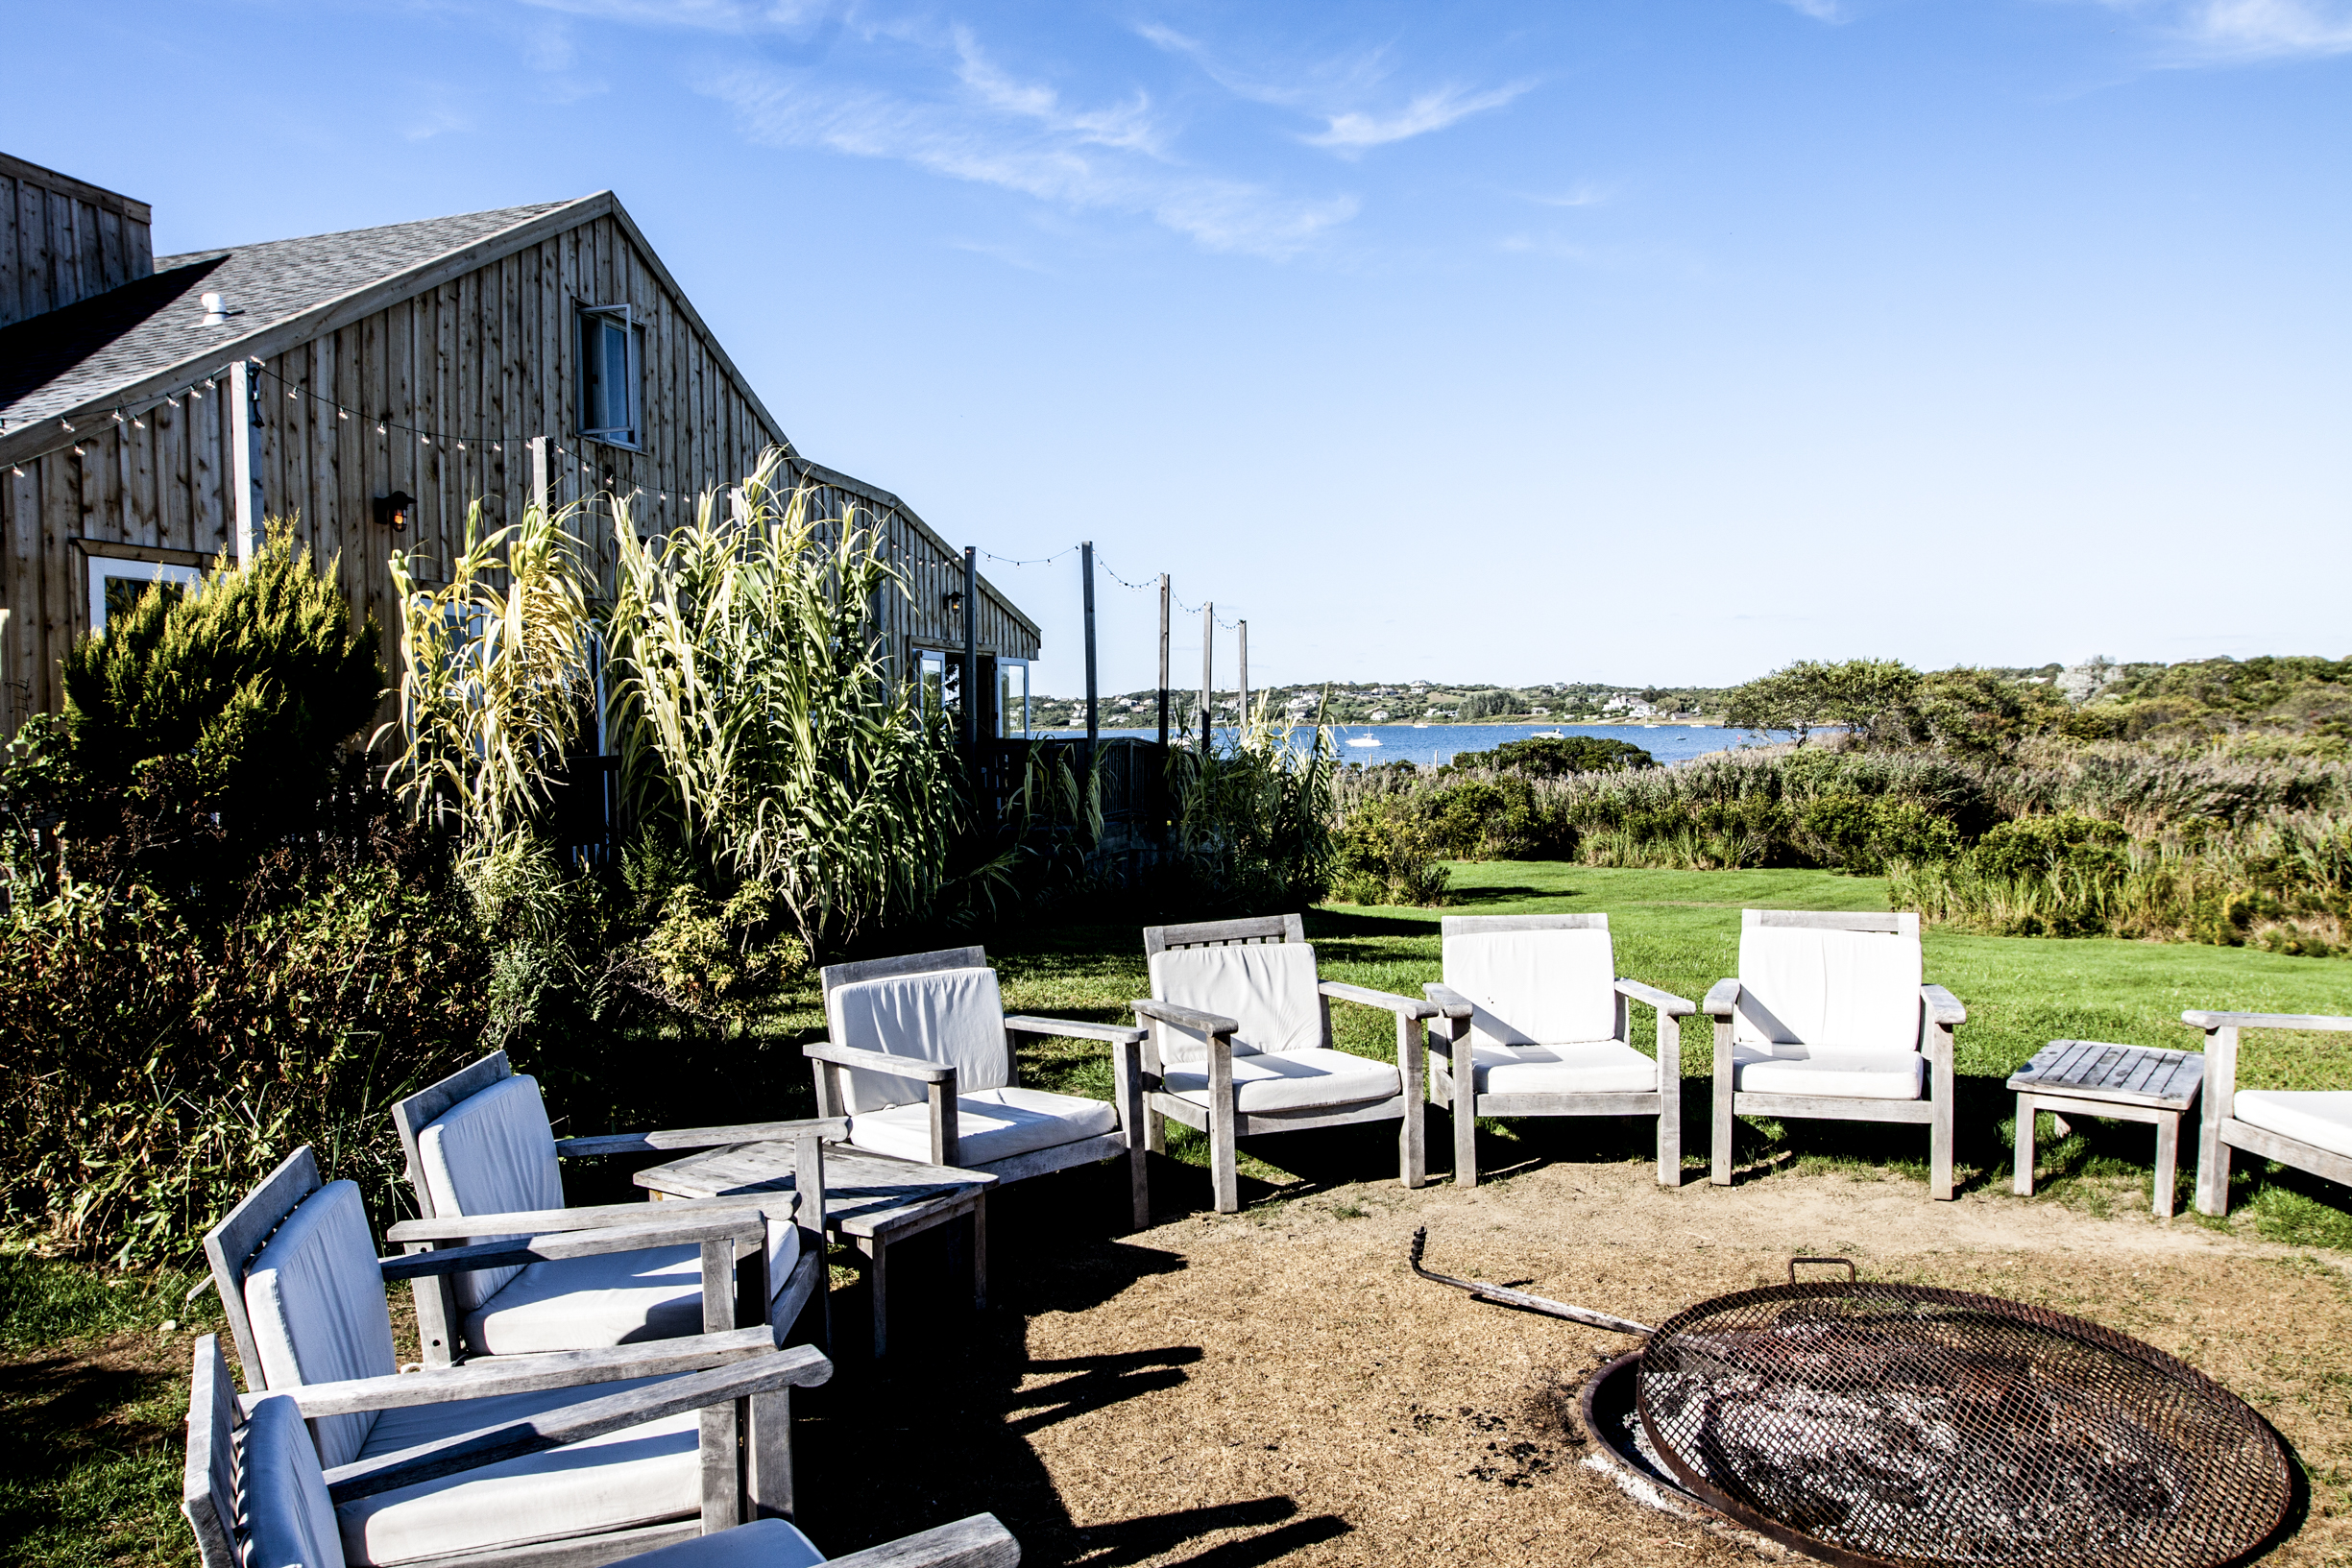 Hotel and restaurant surf shack fire pit in Montauk, New York